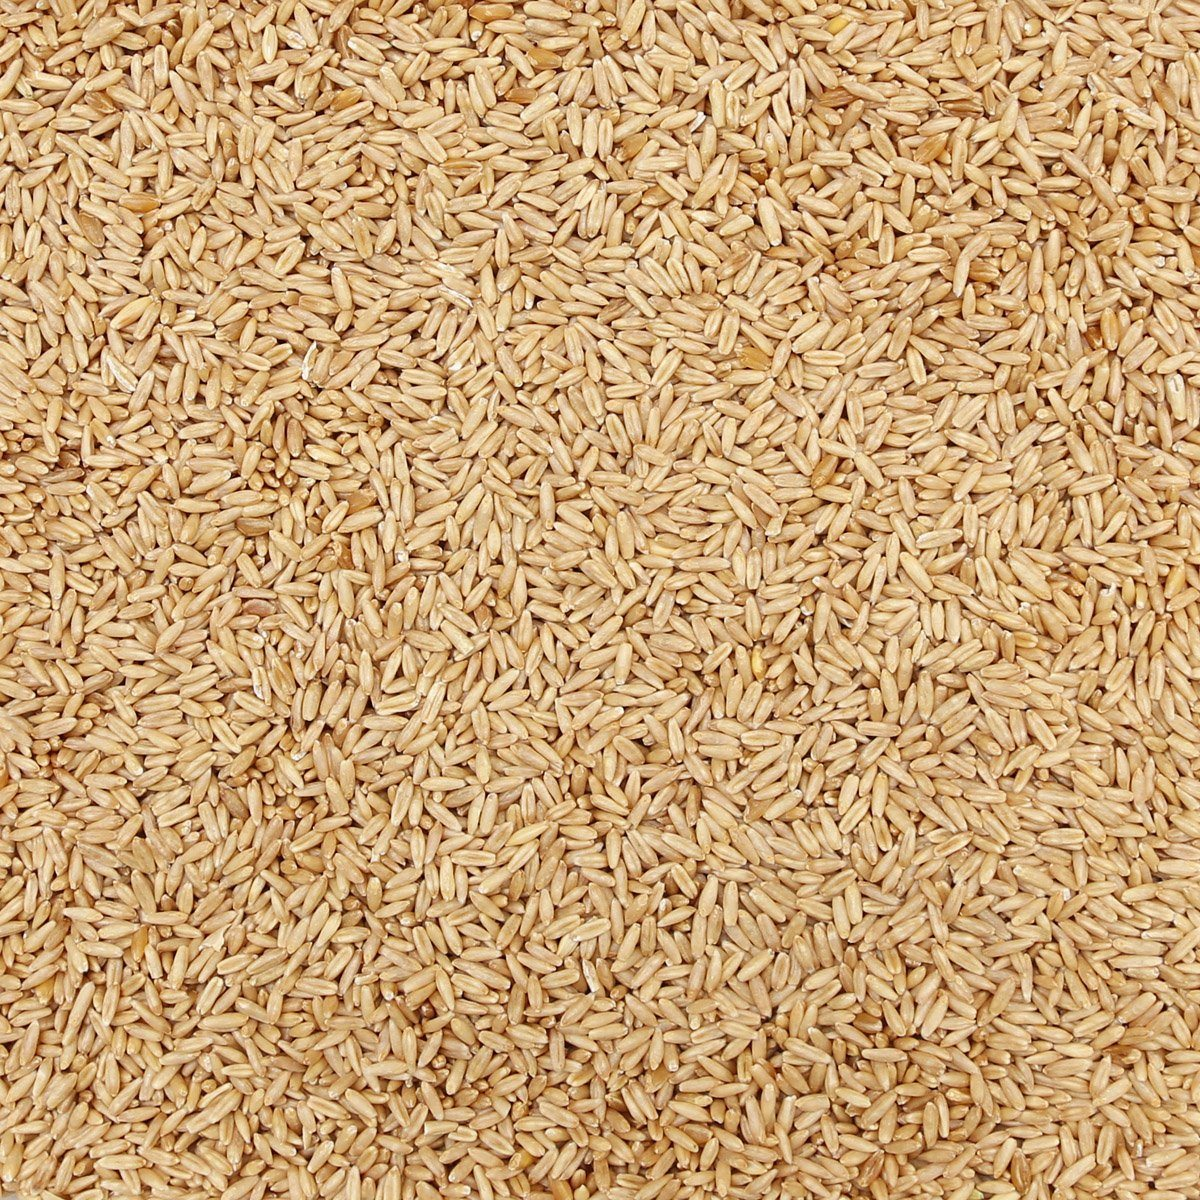 ORGANIC OAT GROATS, whole